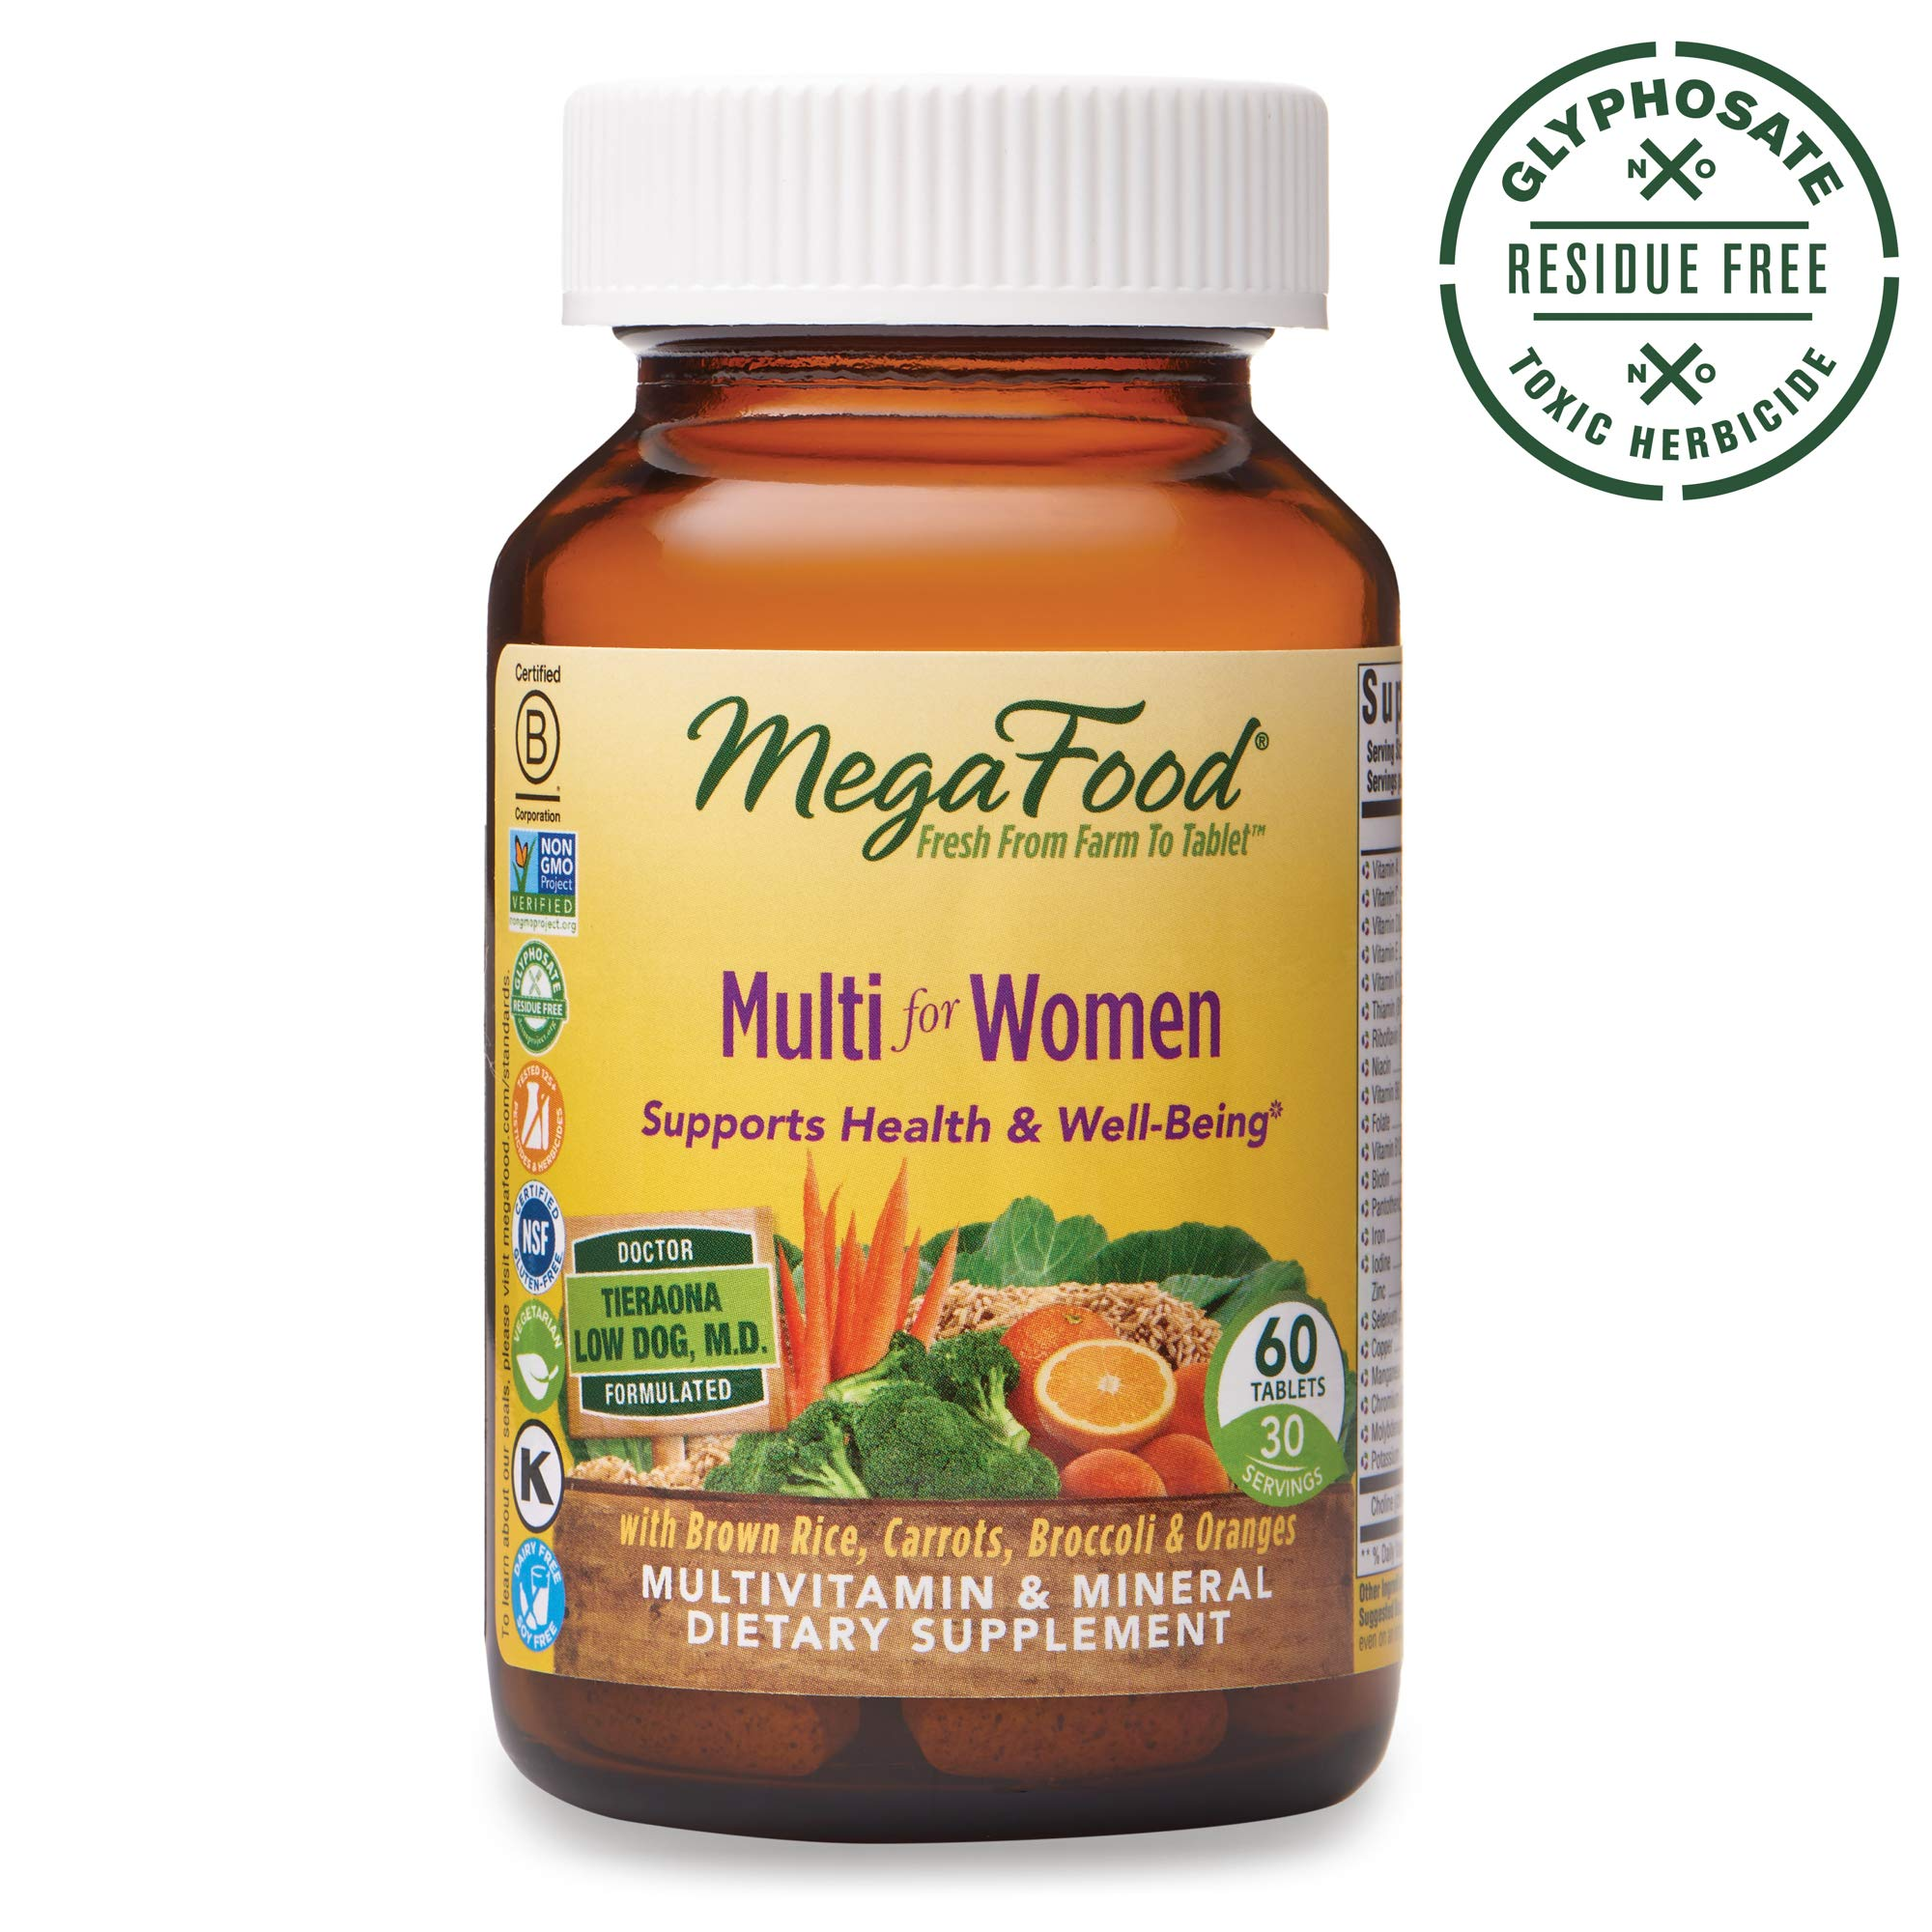 MegaFood, Multi for Women, Supports Optimal Health and Wellbeing, Multivitamin and Mineral Dietary Supplement, Gluten Free, Vegetarian, 60 Tablets (30 Servings) by MegaFood